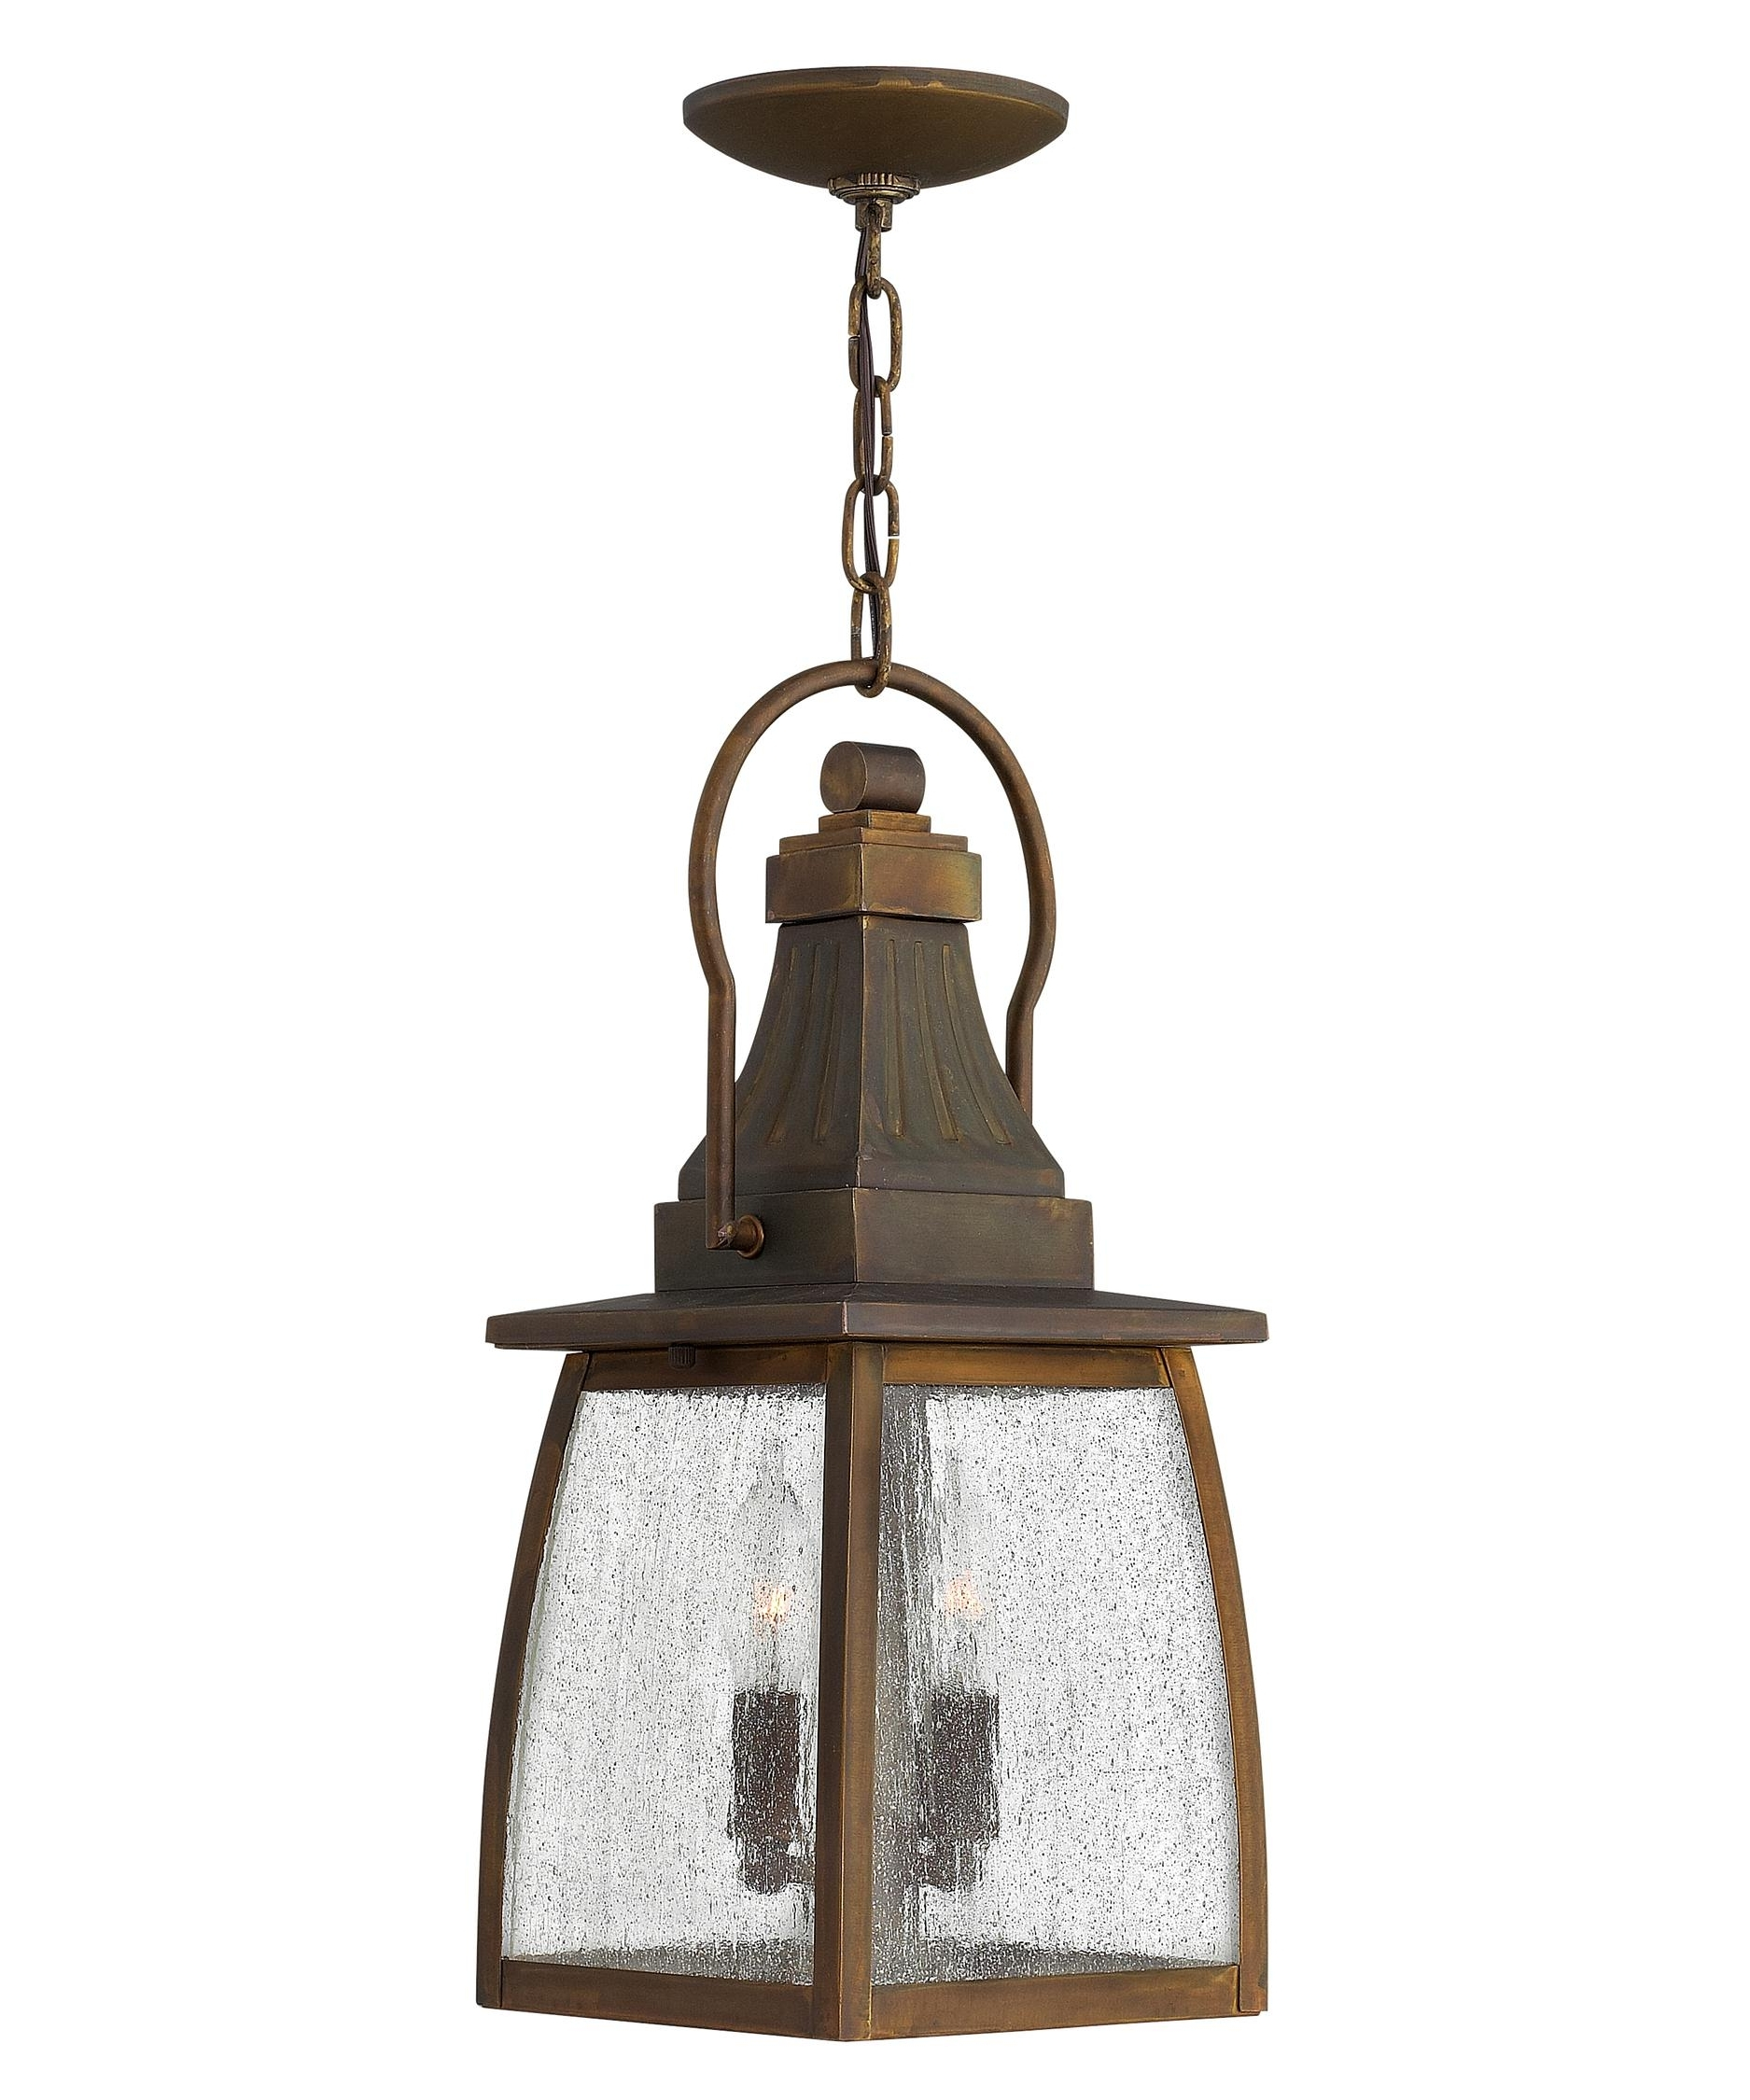 Led Outdoor Hanging Lanterns Throughout Widely Used Hinkley Lighting 1202 Montauk 7 Inch Wide 2 Light Outdoor Hanging (View 16 of 20)